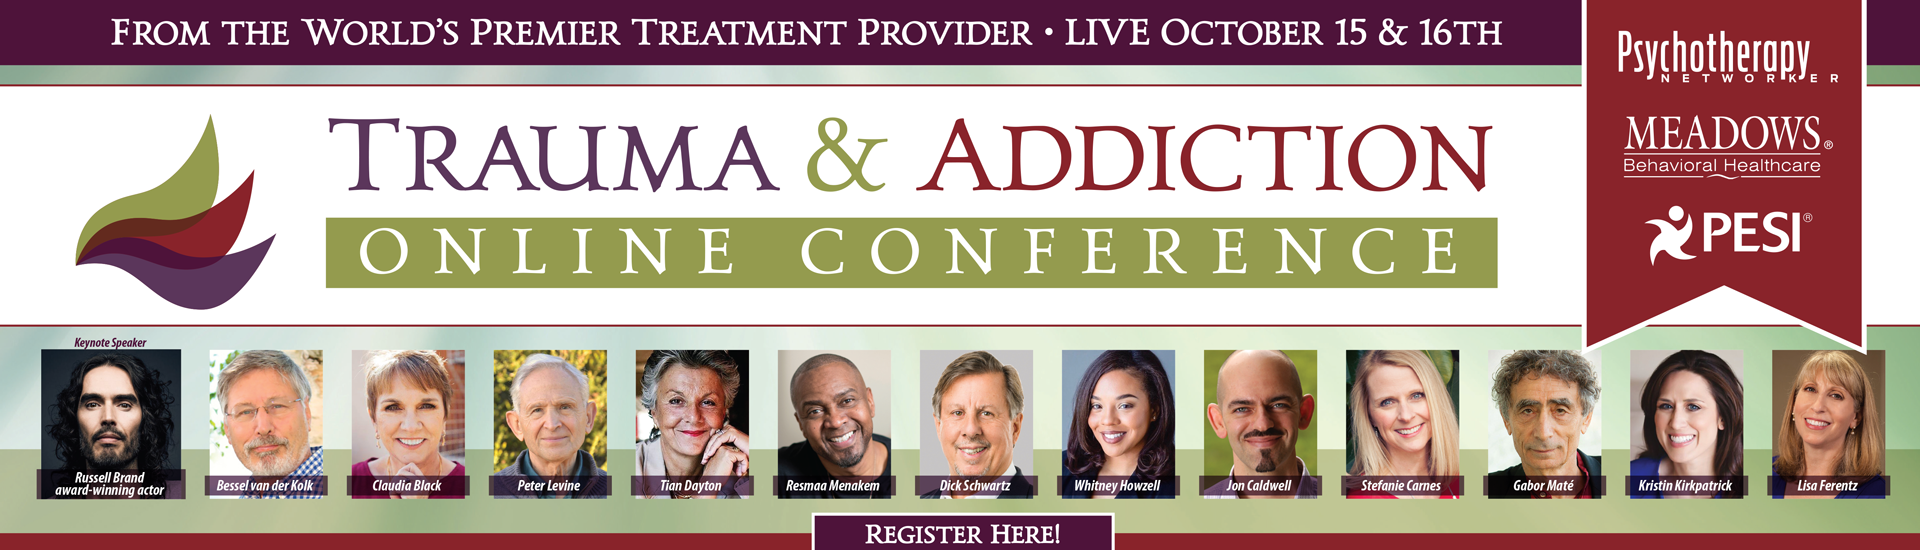 The Meadows' Trauma & Addictions Online Conference